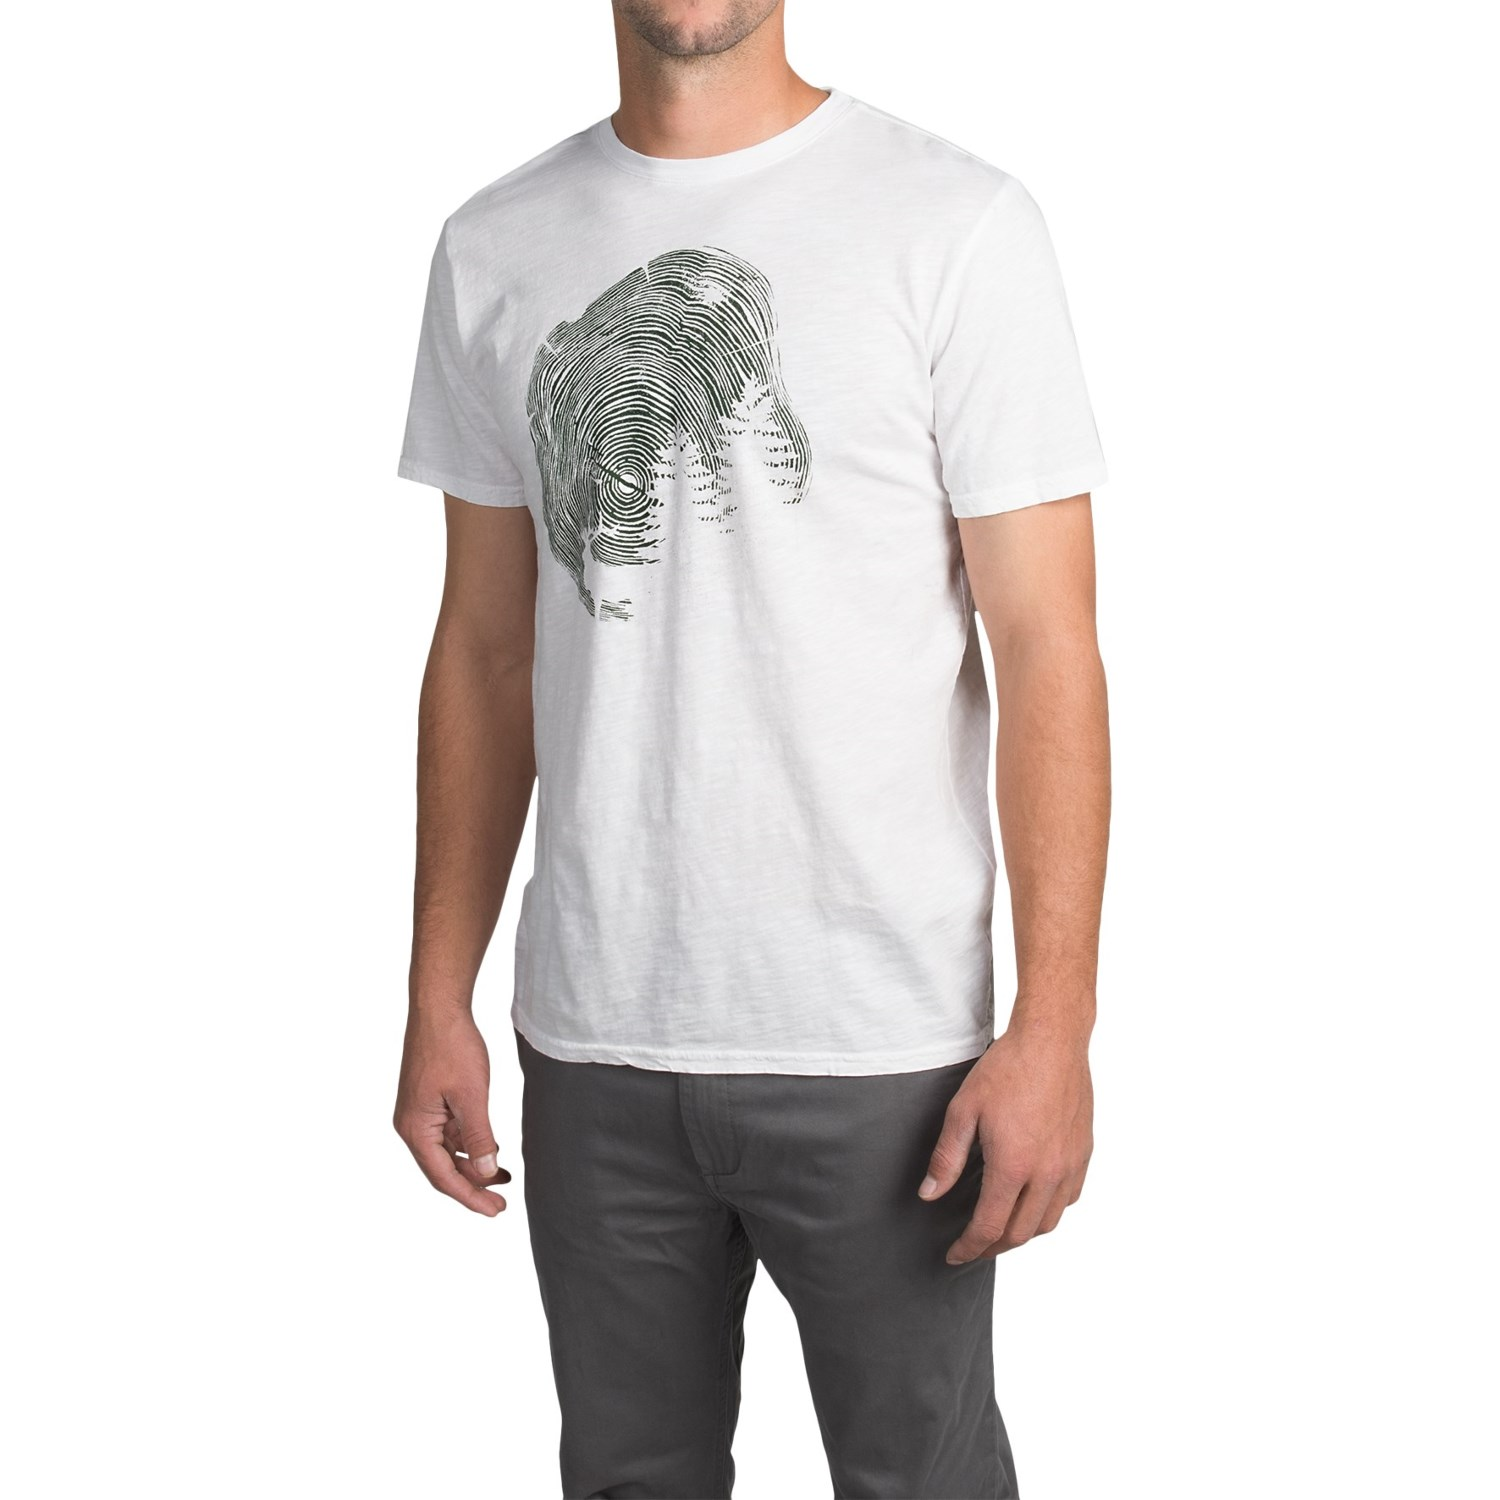 United by blue gorham cut t shirt for men save 80 for Cut shirts for men